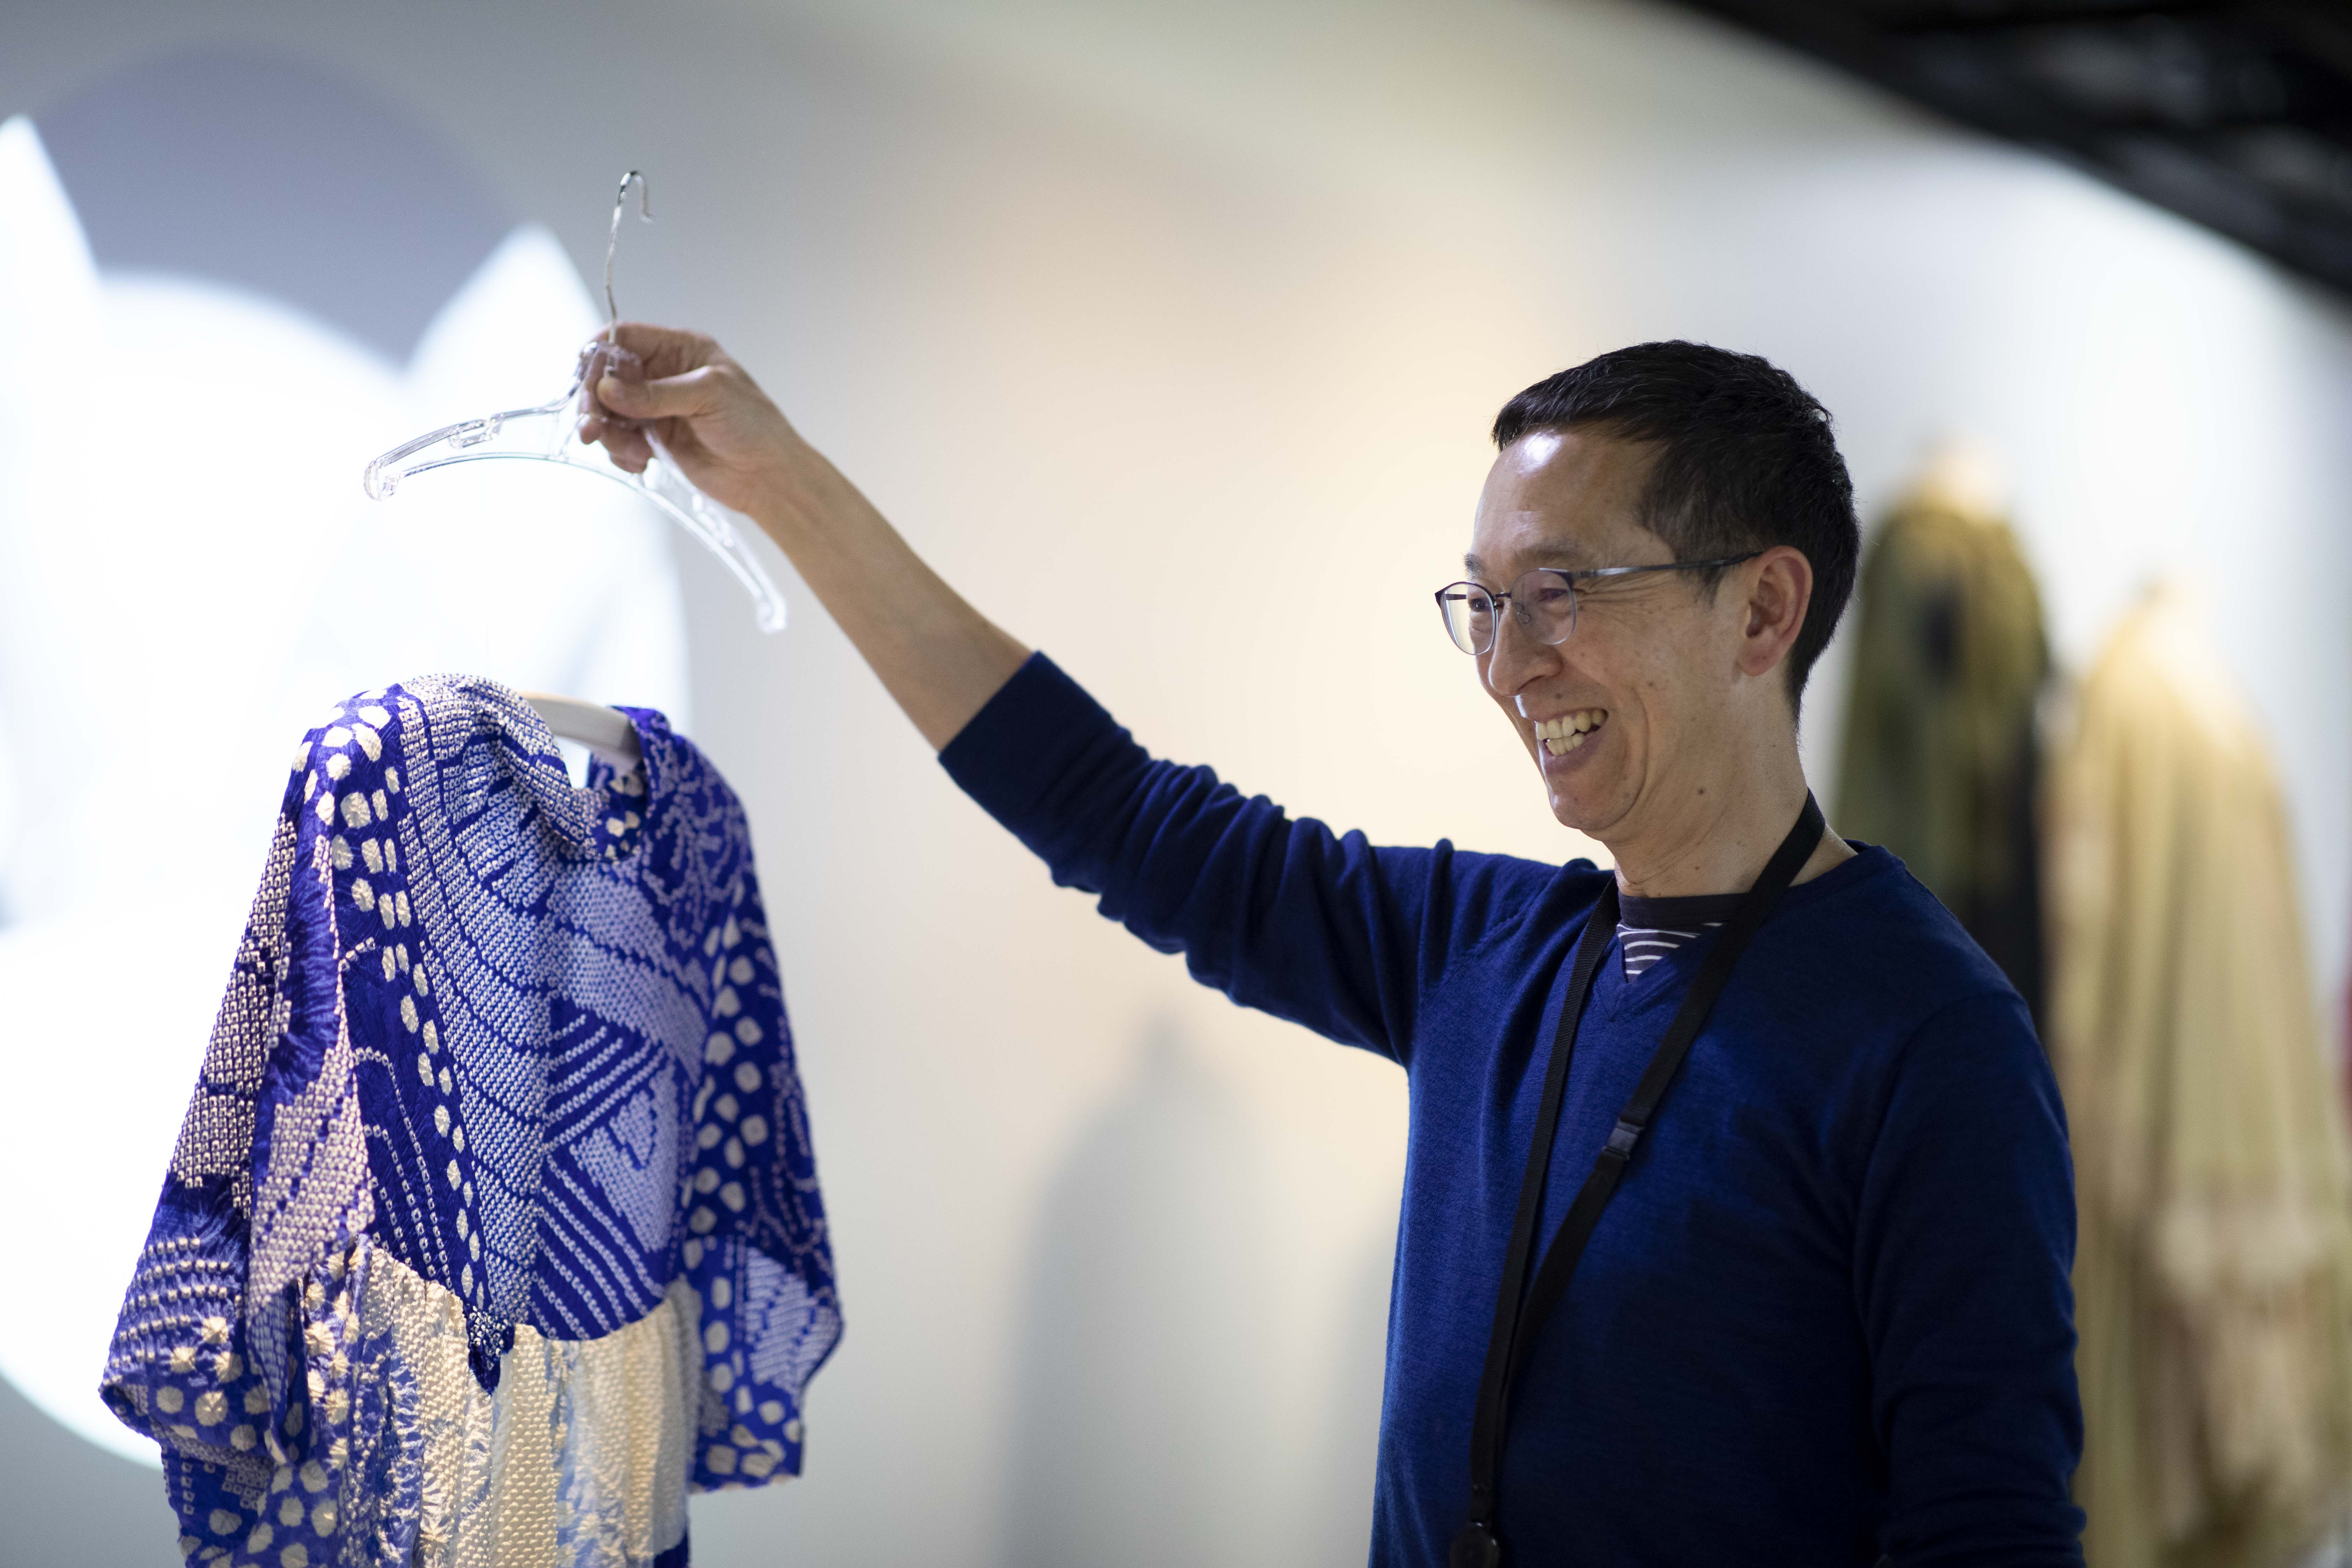 A man holding a coathanger from which drapes a blue and white patterned silk top. The man has a broad smile.